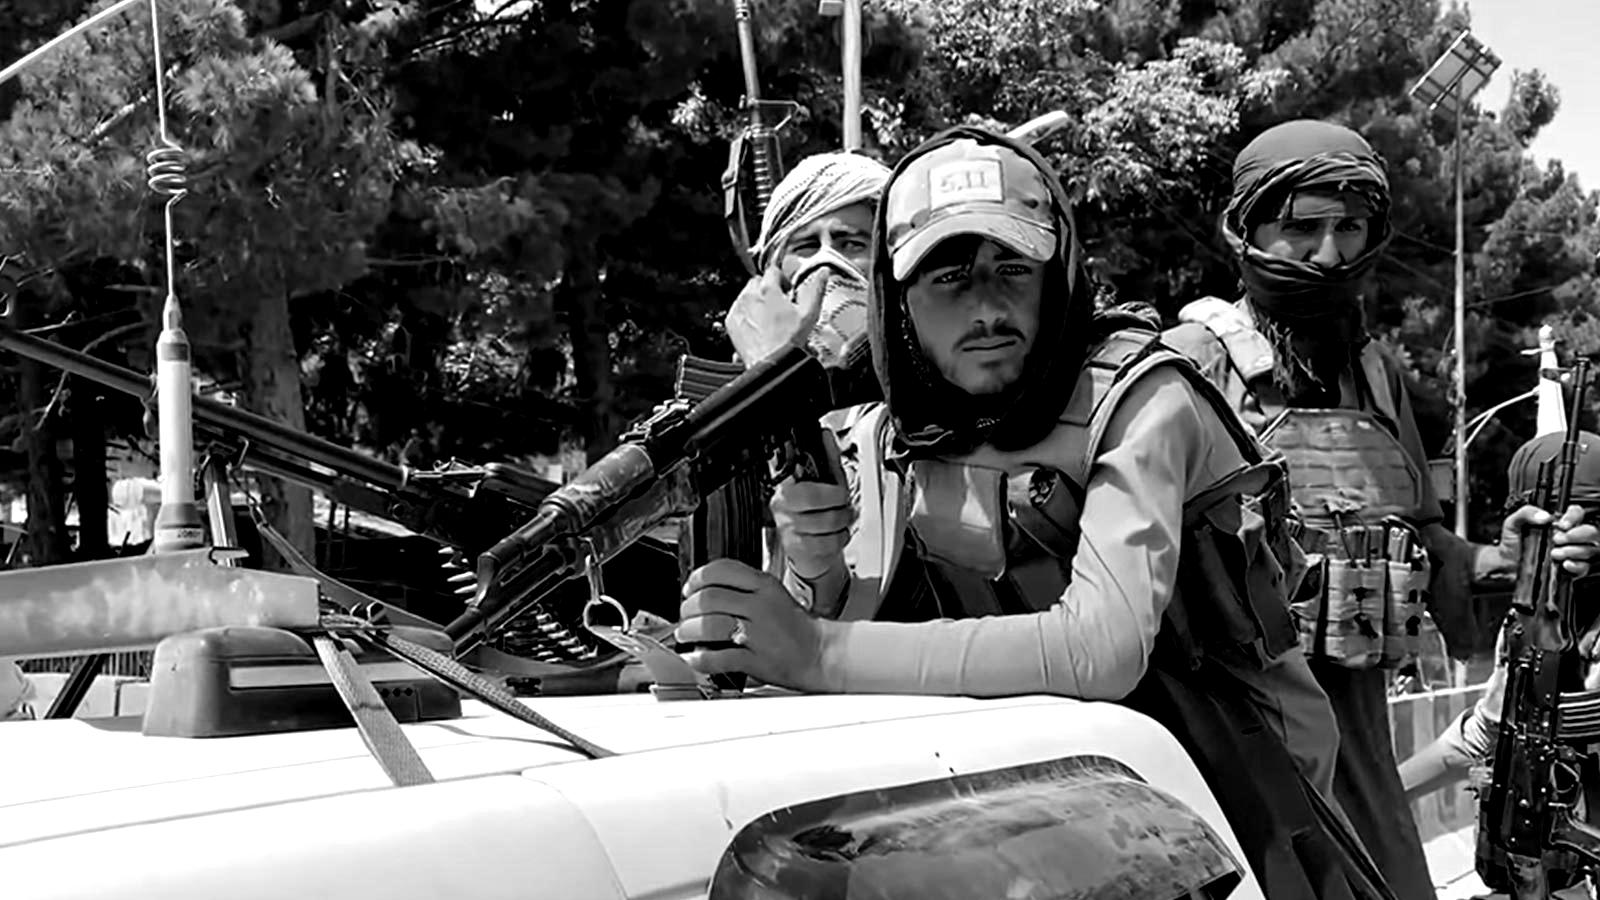 Taliban fighters in Kabul, Afghanistan on August 17 2021, Wikimedia Commons